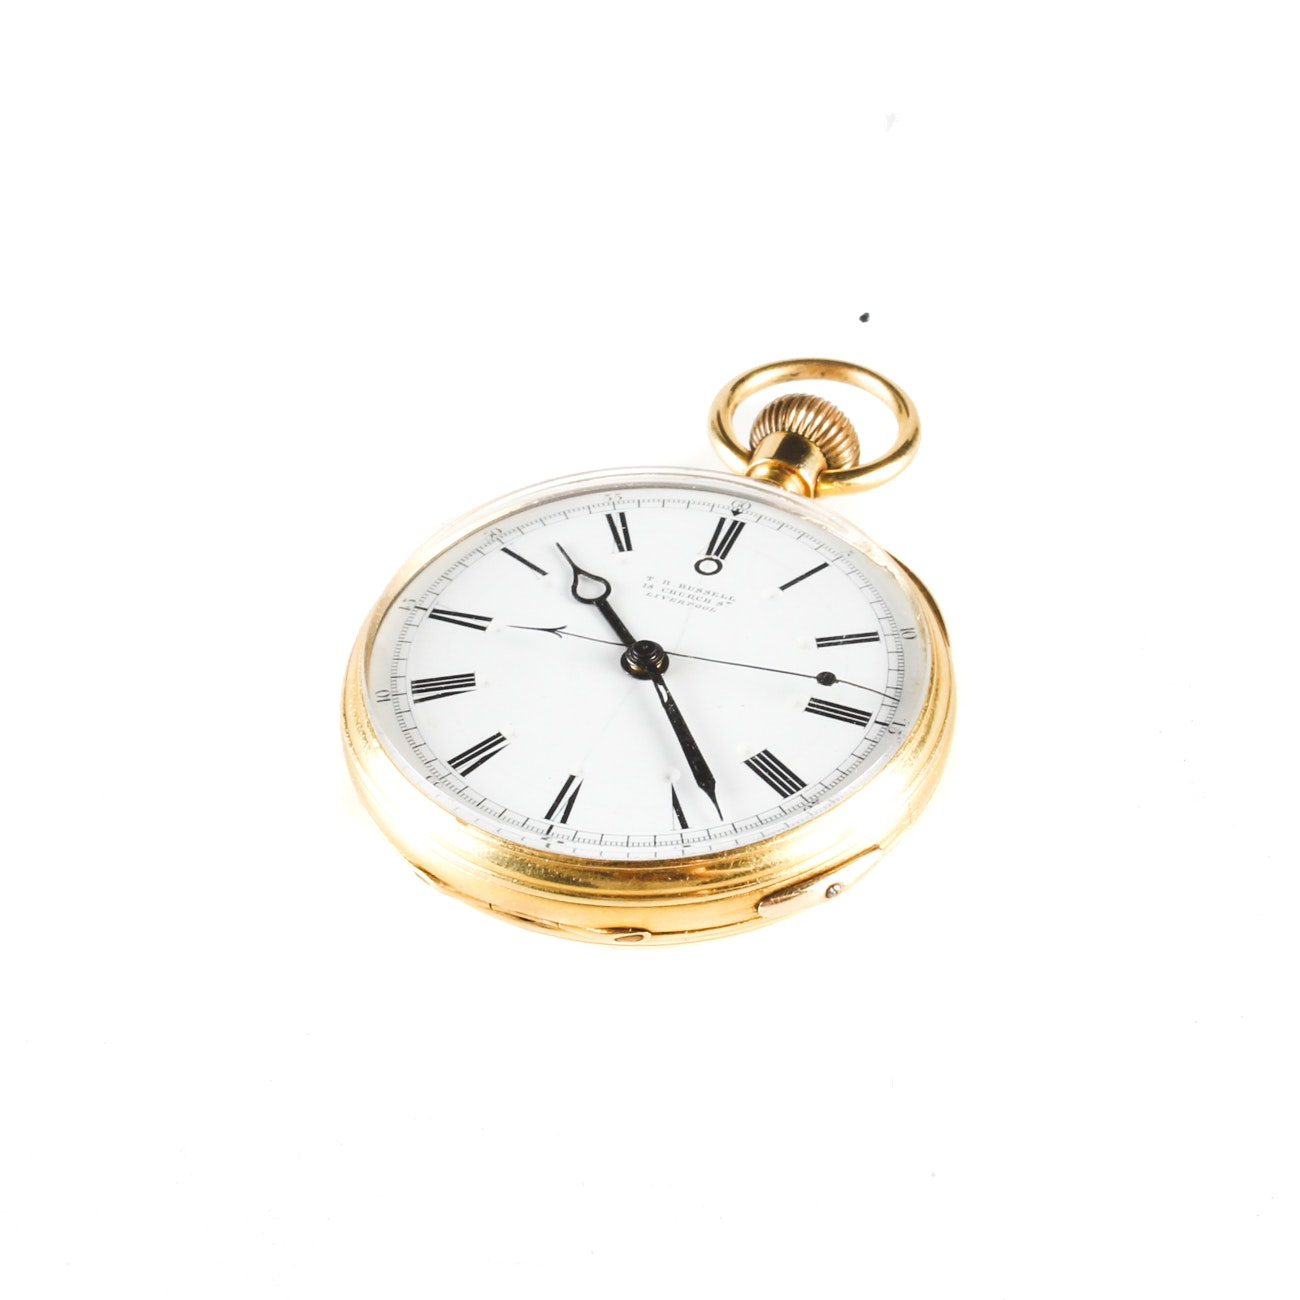 14K Yellow Gold T.R. Russell Pocket Watch